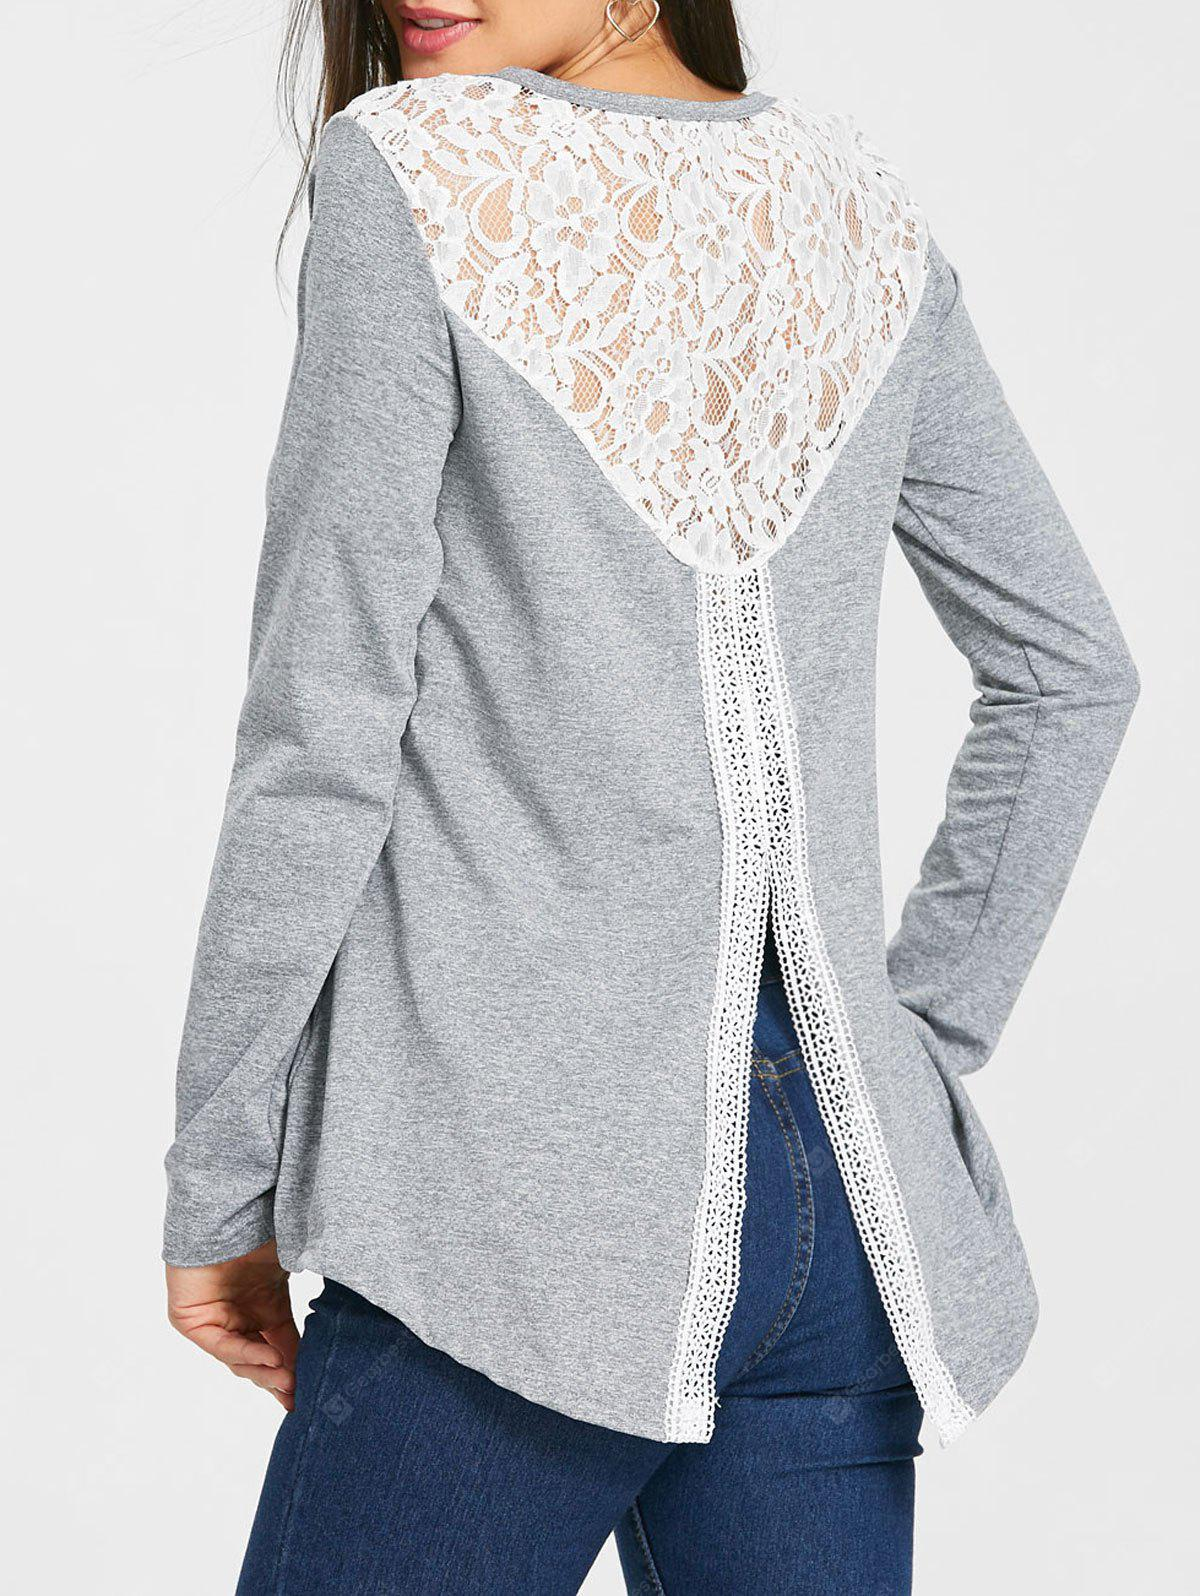 Slit Back Hollow Out Blouse